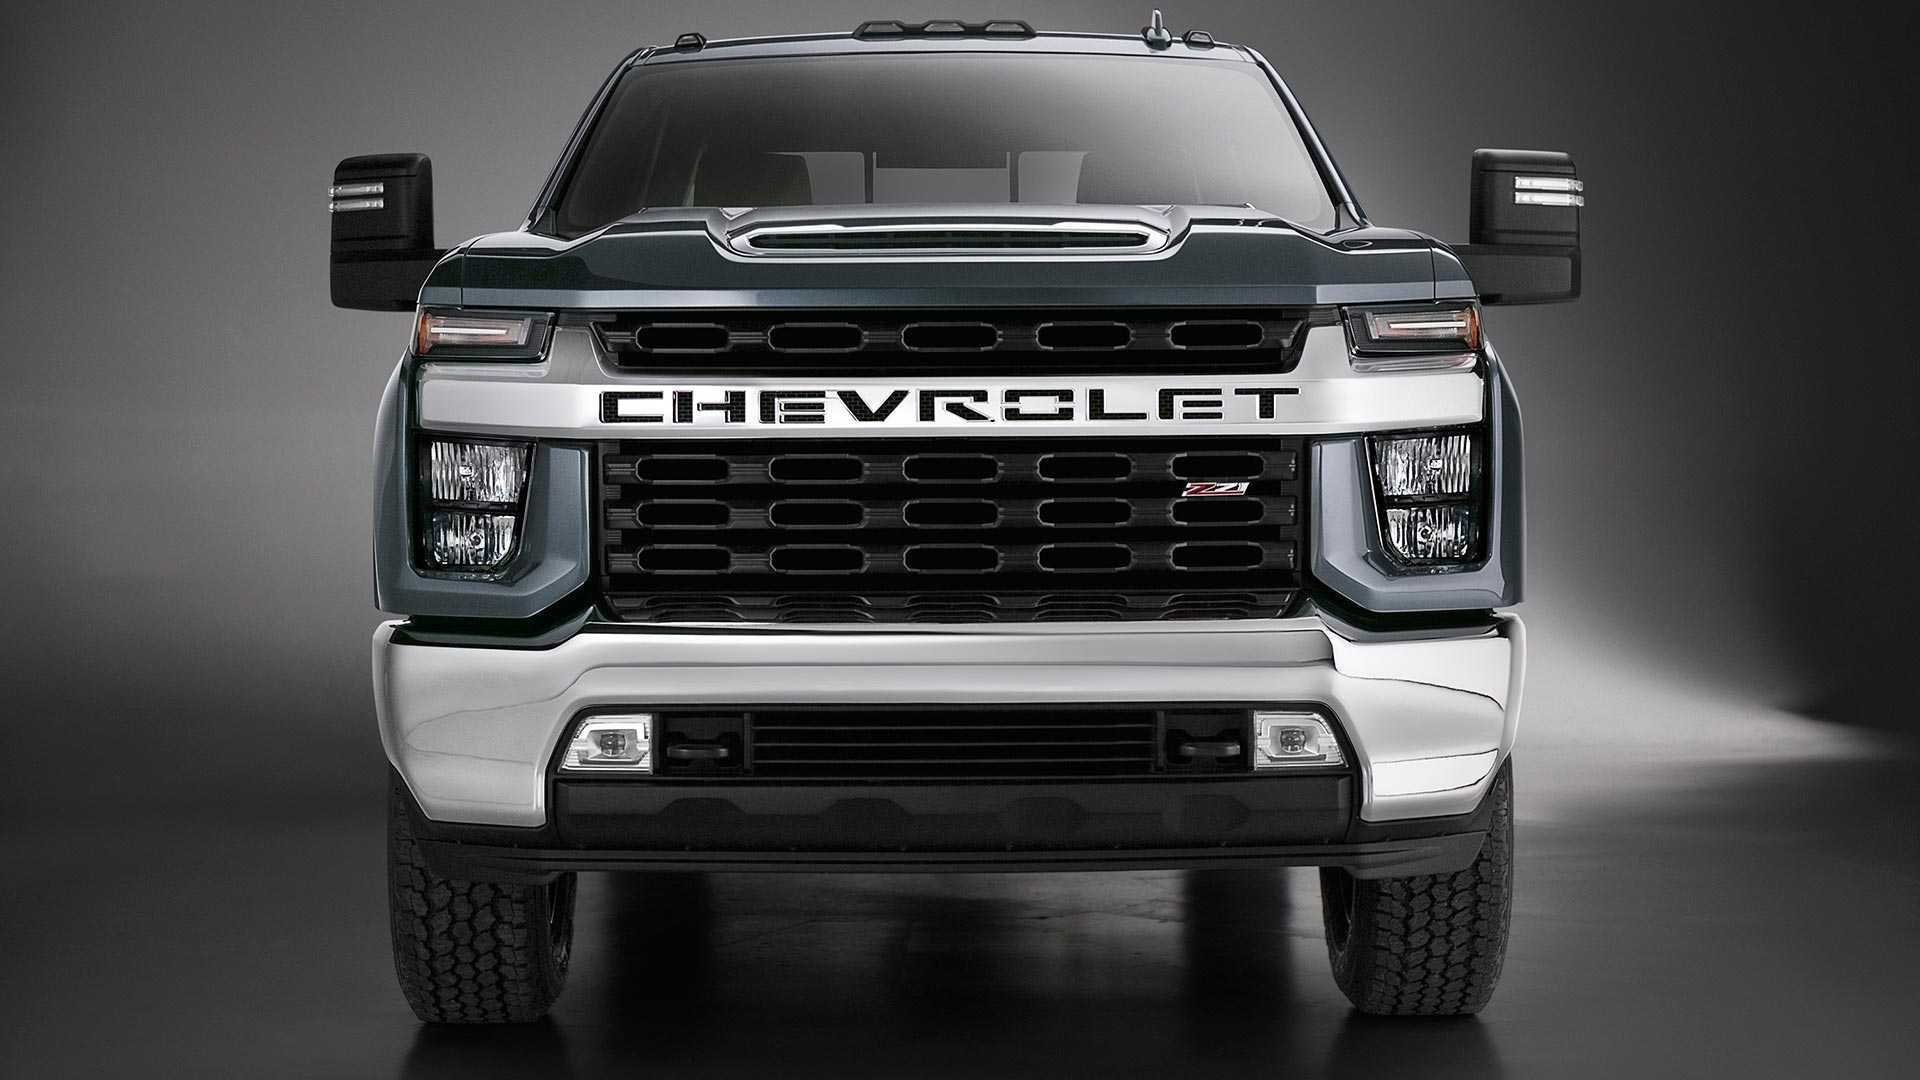 New Chevy Trucks >> 2020 Chevy Silverado Hd Unveiled Getting New V8 And Gearbox